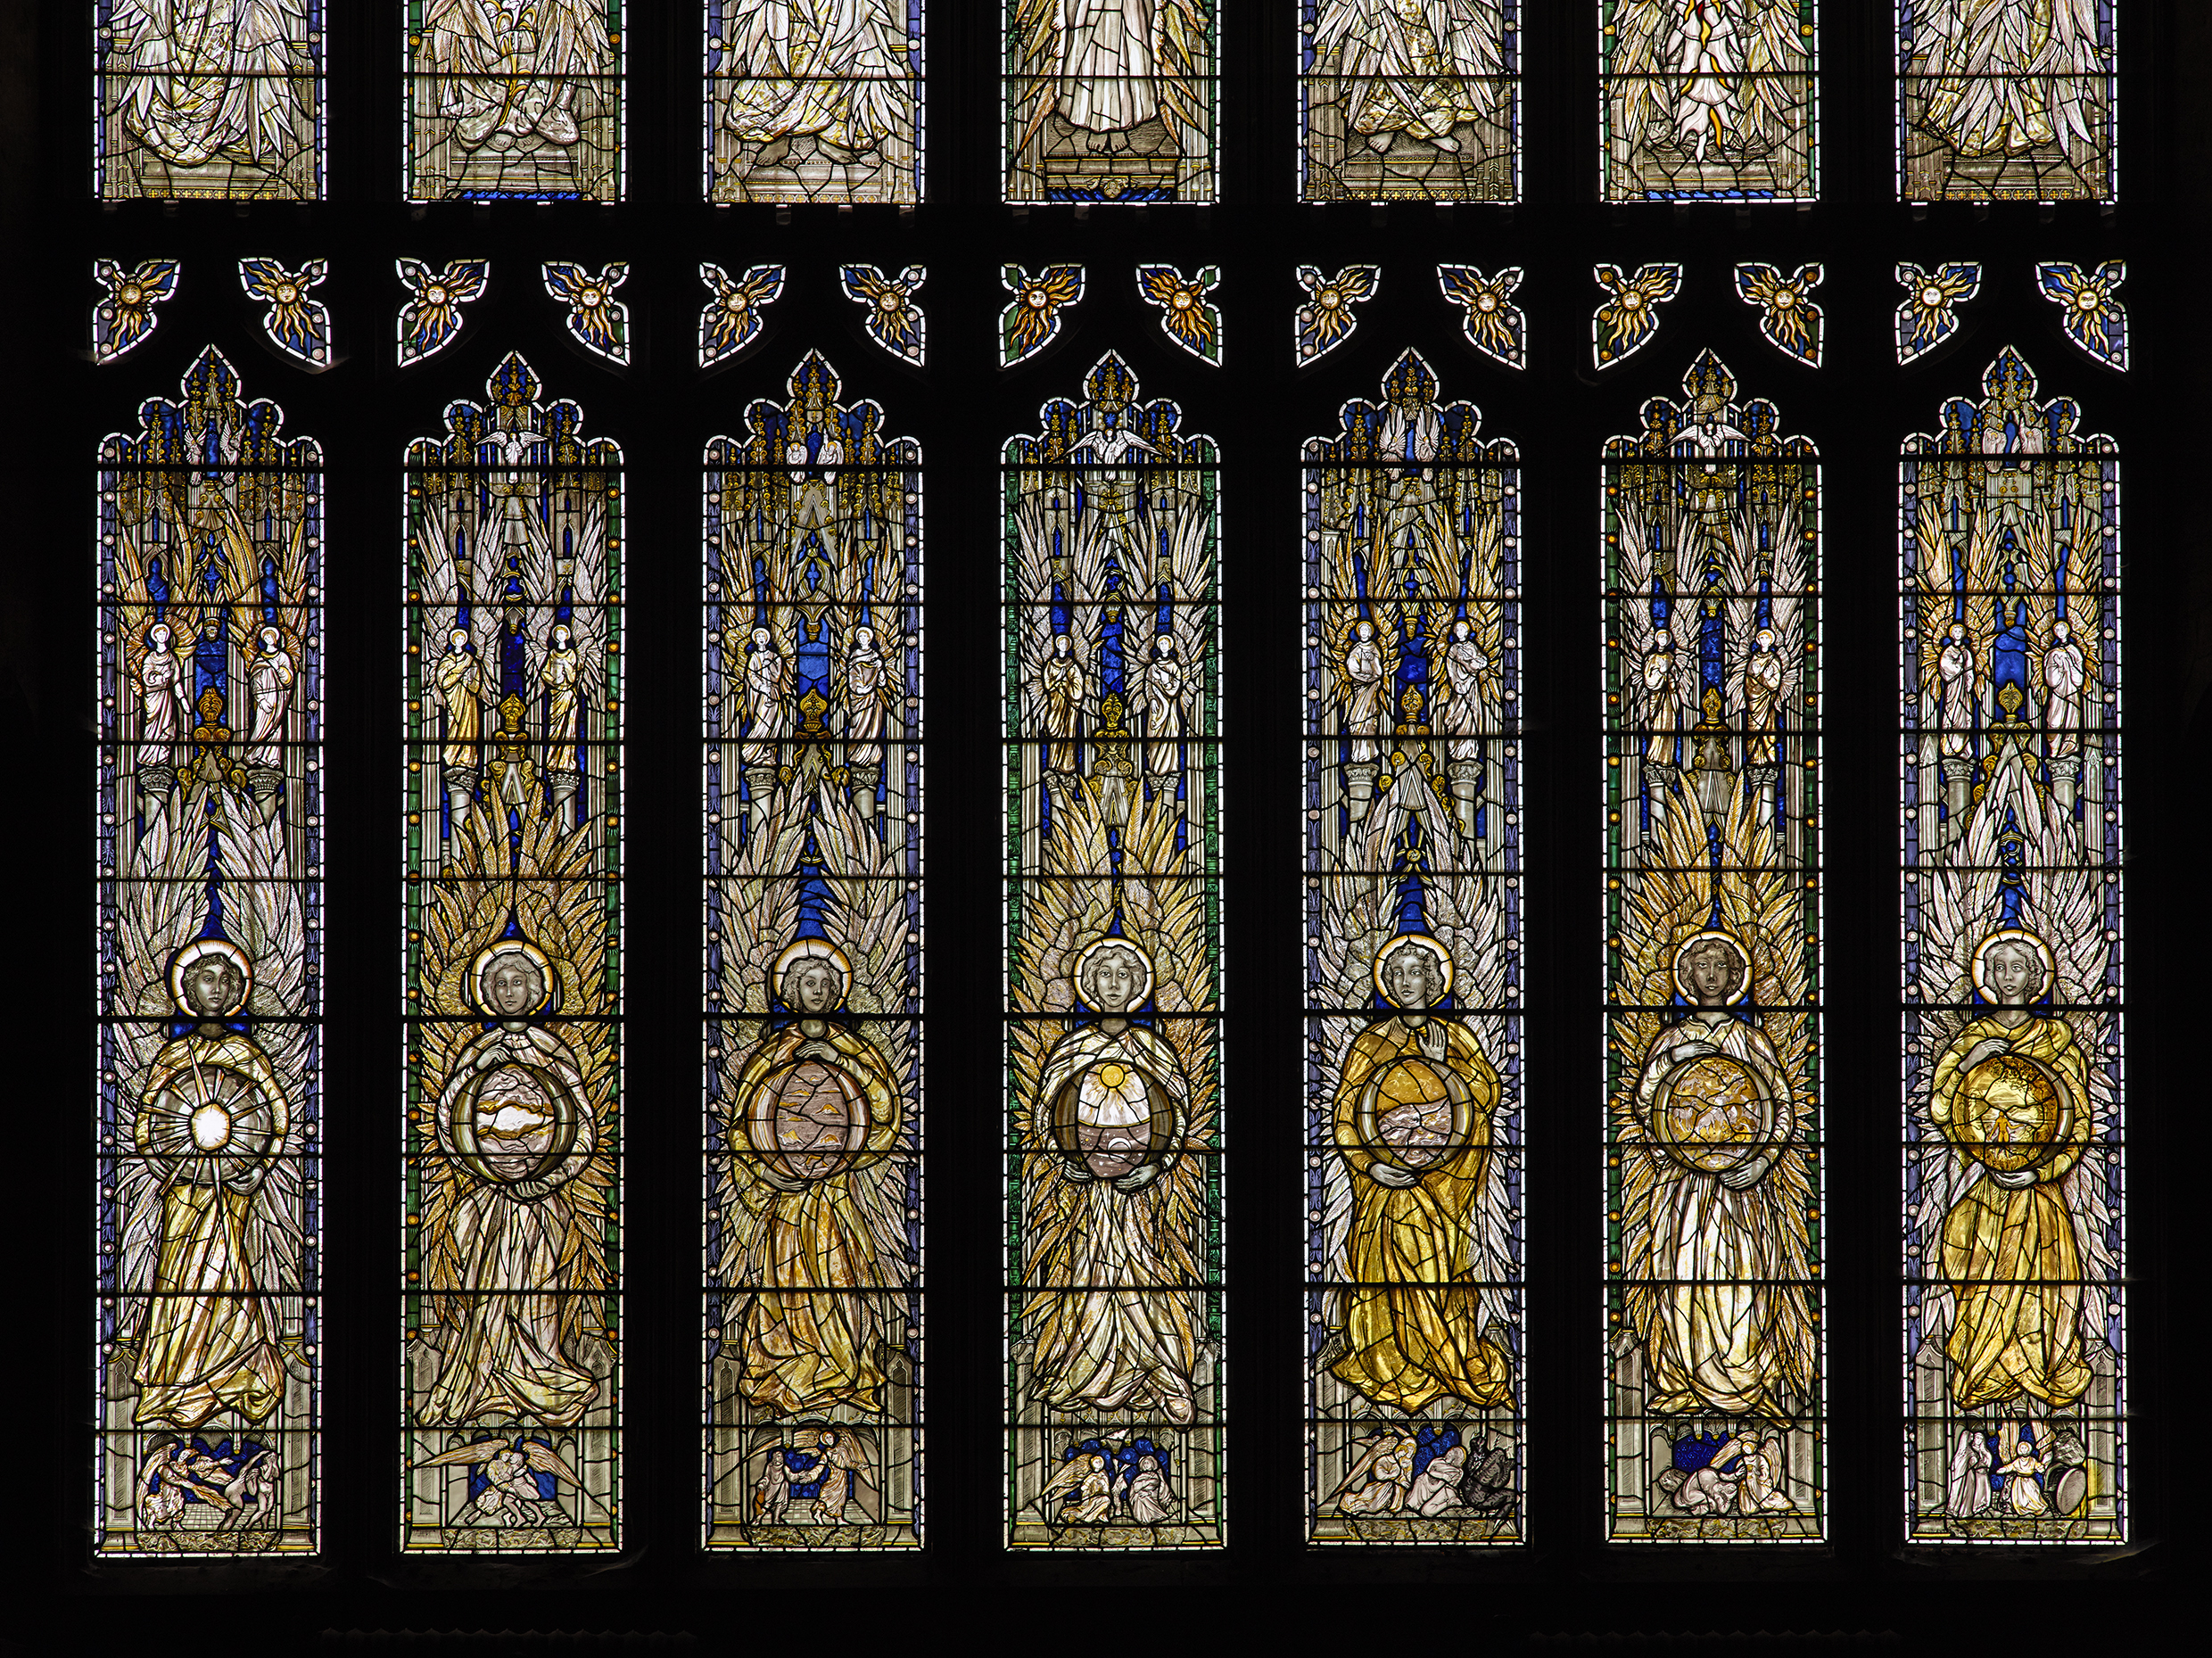 Stained glass window section inside Southwell Minster